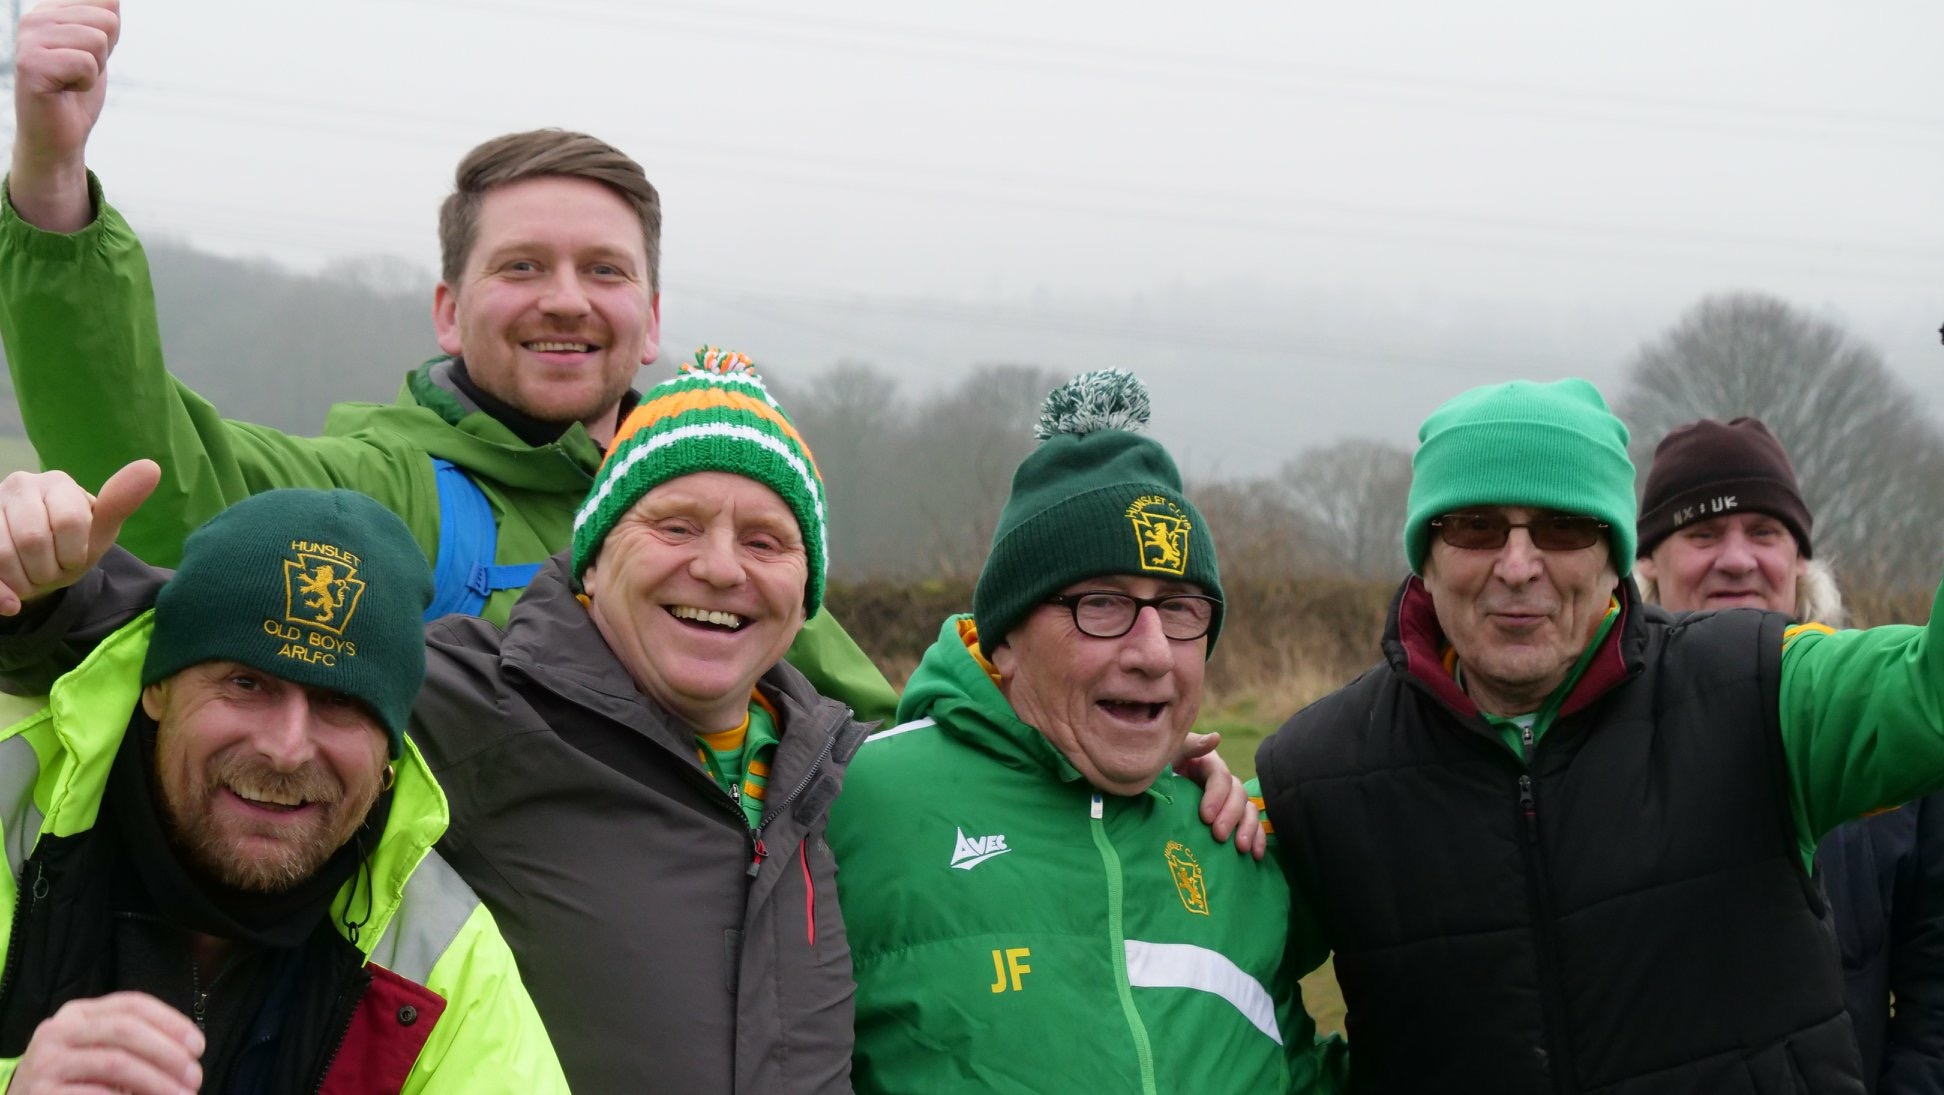 The Hunslet Ultras make sure every game feels like the Grand Final!